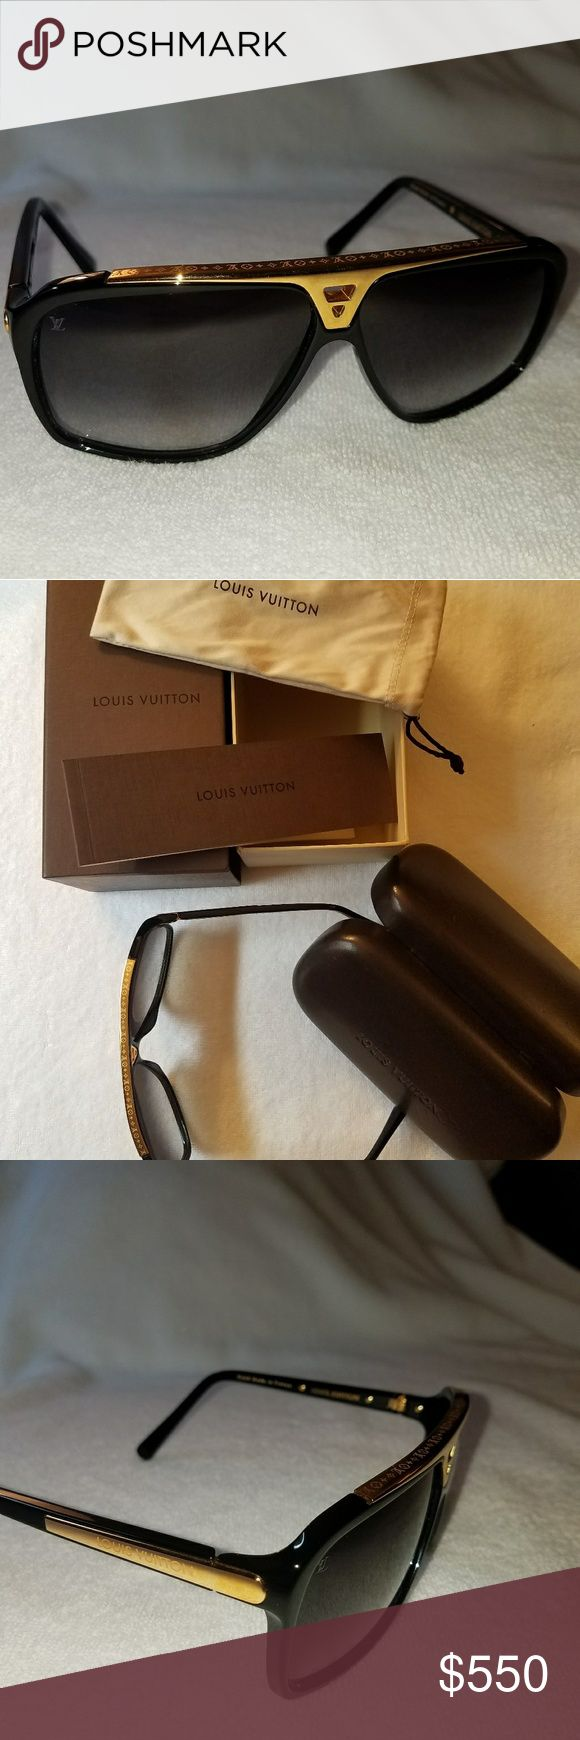 Louis Vuitton Evidence Z0350W Black and Gold Black and Gold Louis Vuitton Evidence Z0350W 100% UV protection  Acetate frame Graded lenses  Hand made in France  Barely worn Comes with hard case, travel bag/dust bag, original box, booklet Louis Vuitton Accessories Sunglasses